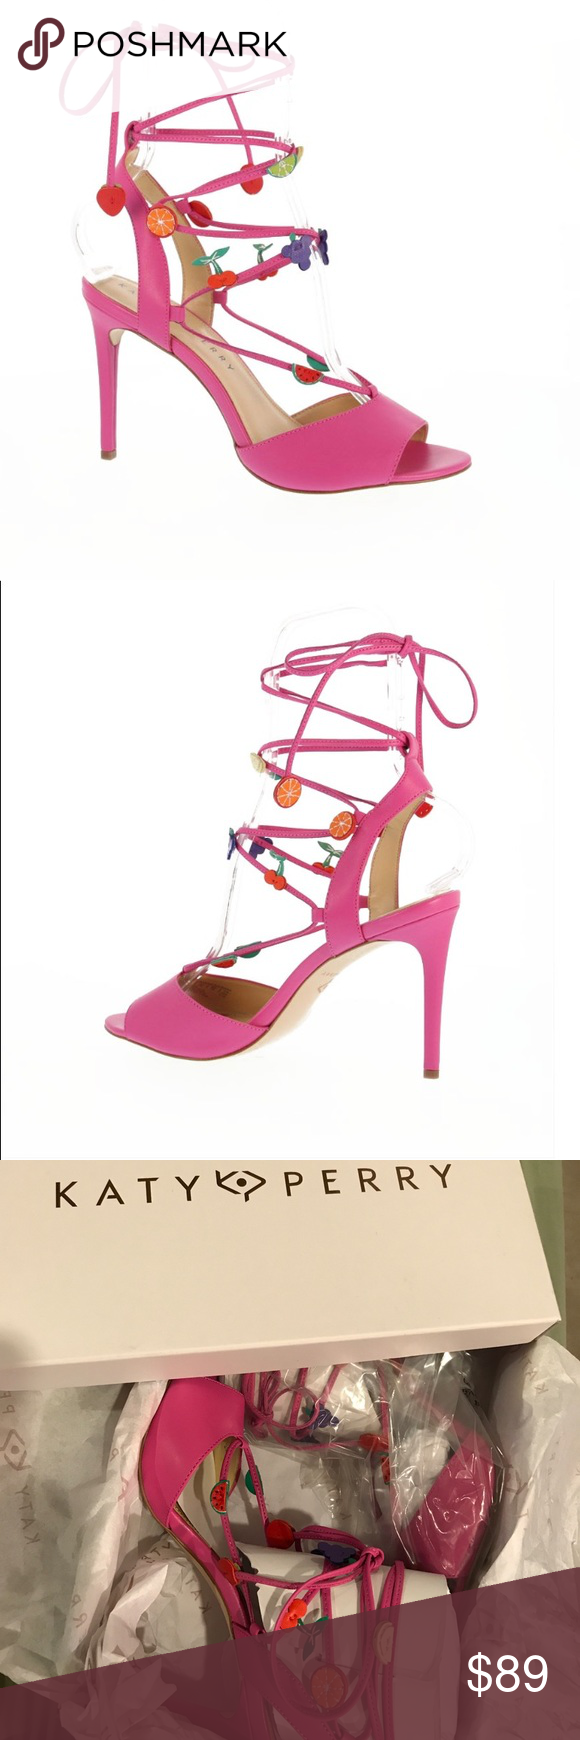 fefbe09f2970 Katy Perry Carmen Lace Up Pump Strappy tutti-frutti sandals made for  kicking up your heels and Hav ana good time. 3.7